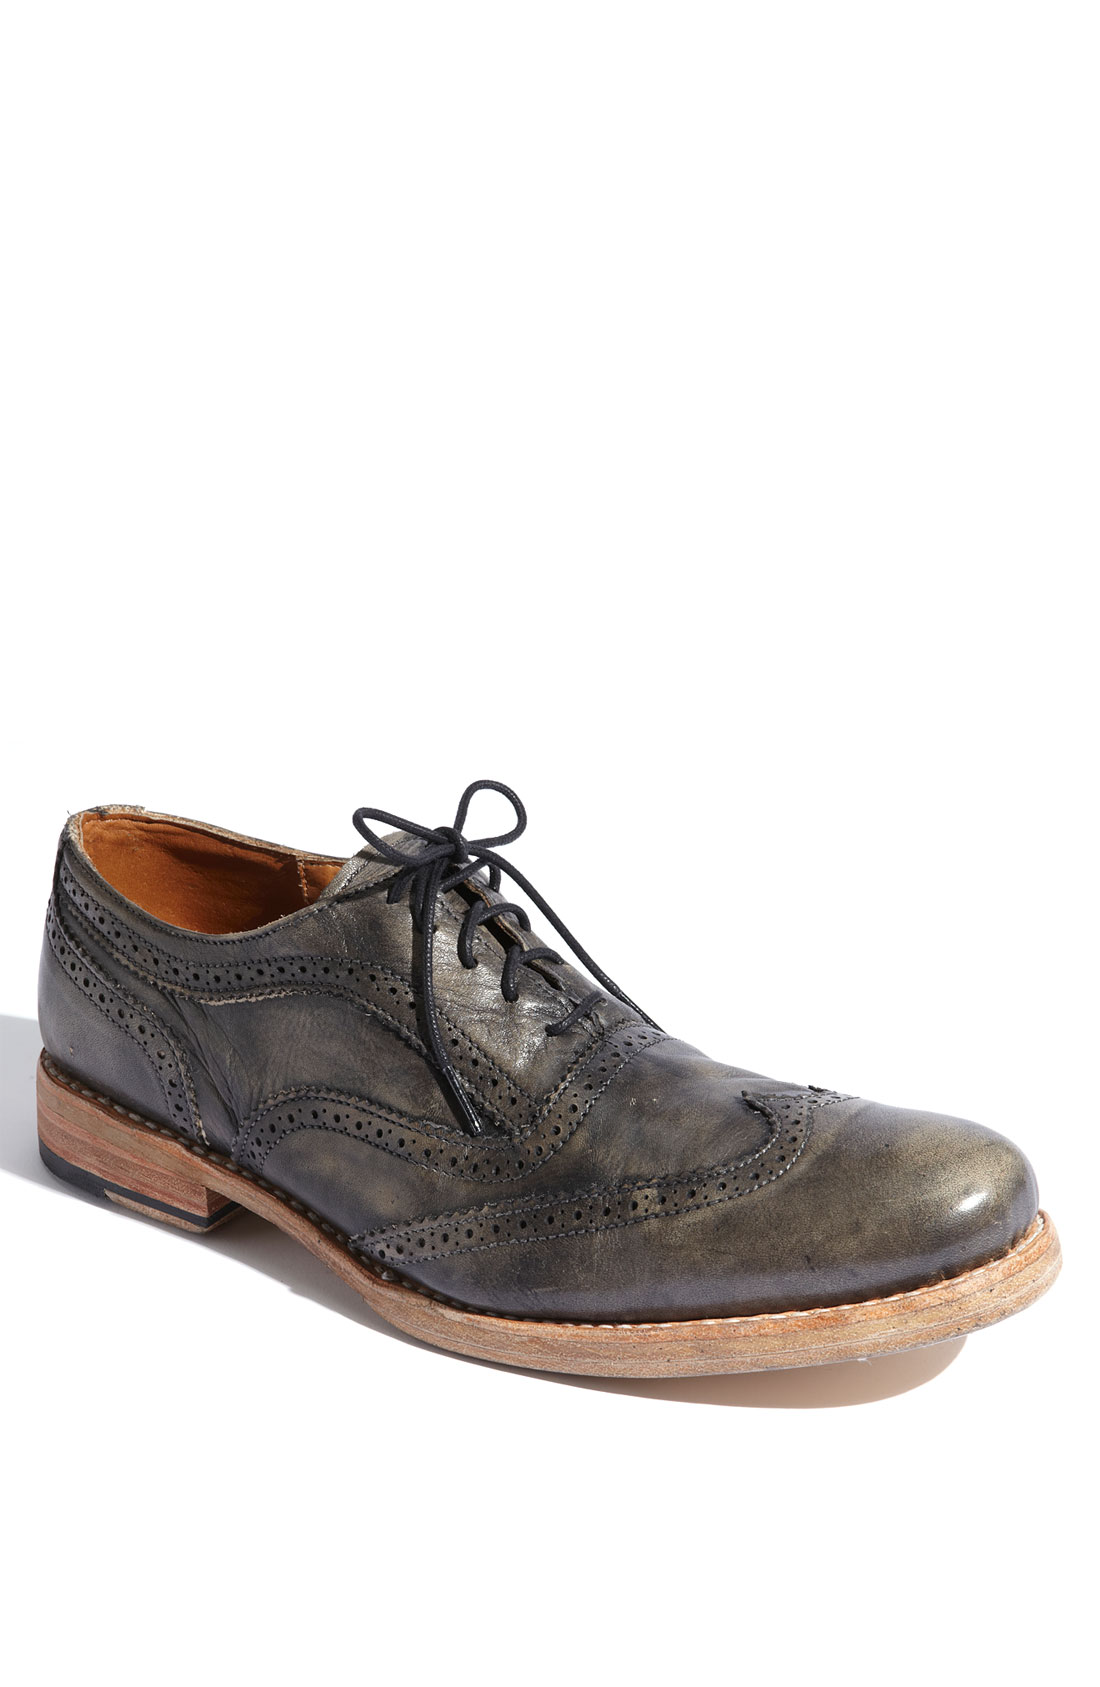 Bed Stu Women S Oxford Shoes